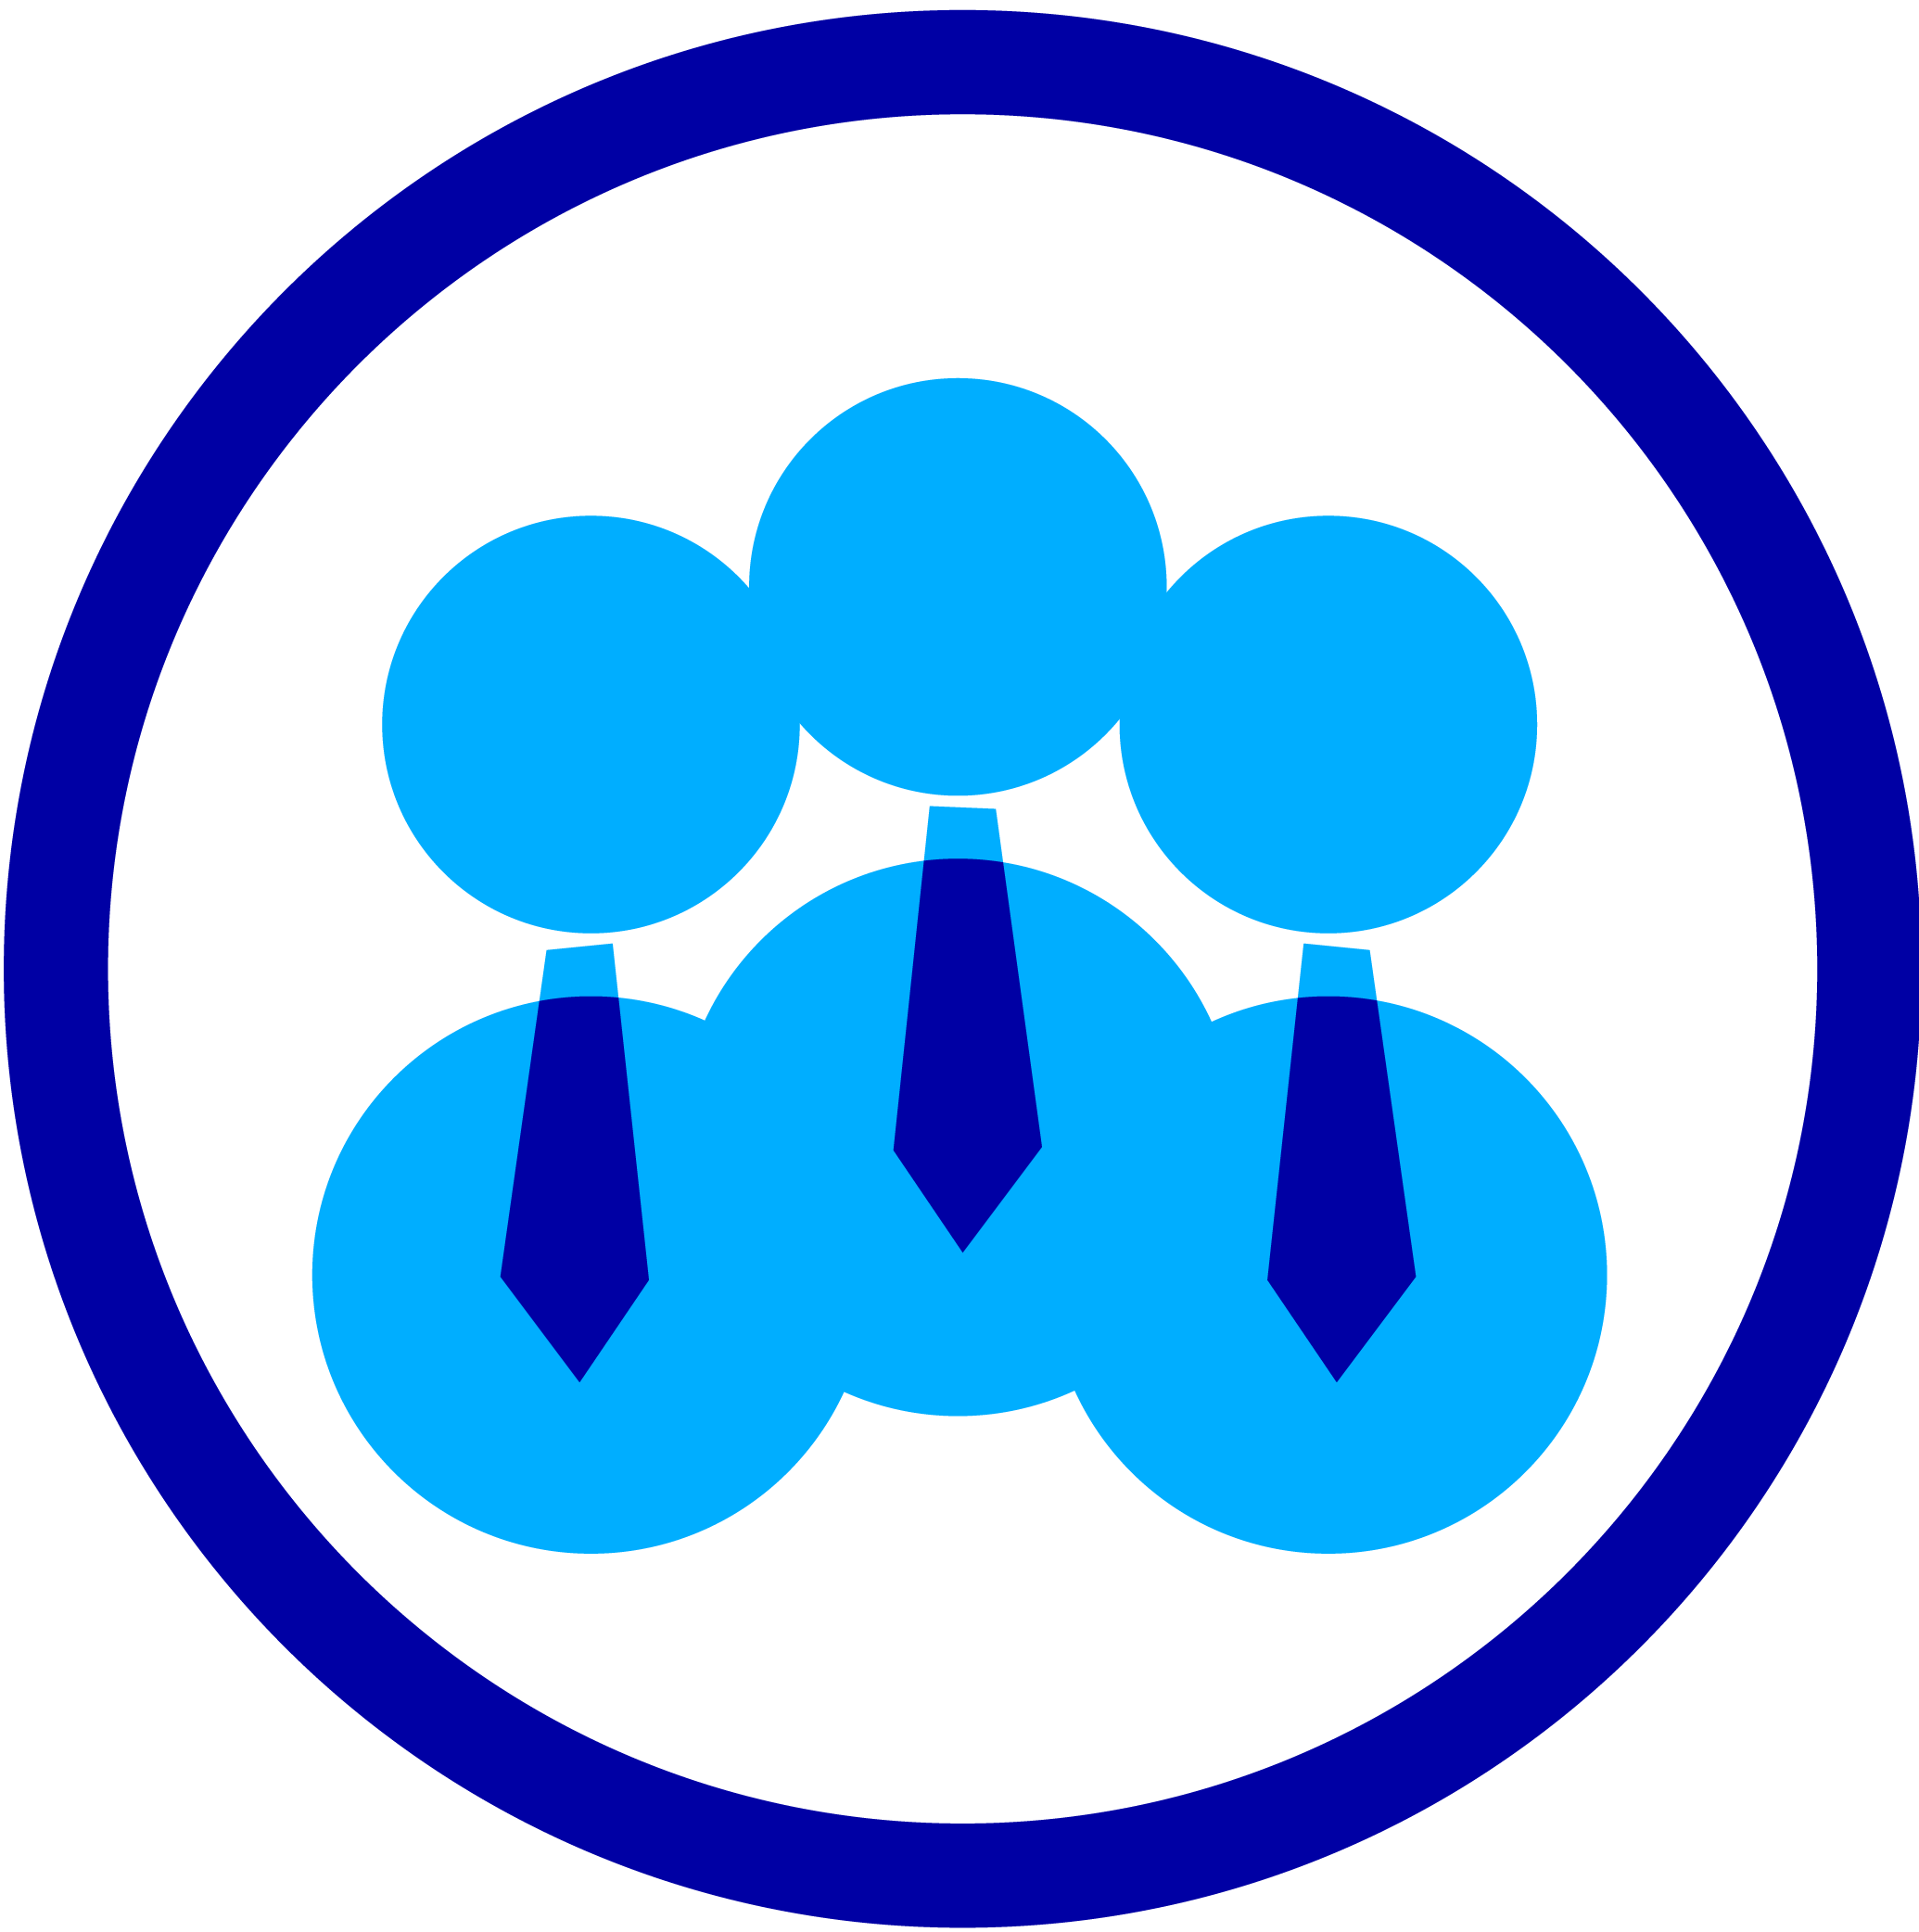 https://fr.fi-group.com/wp-content/uploads/2021/02/blue-icons-set_1-59.png